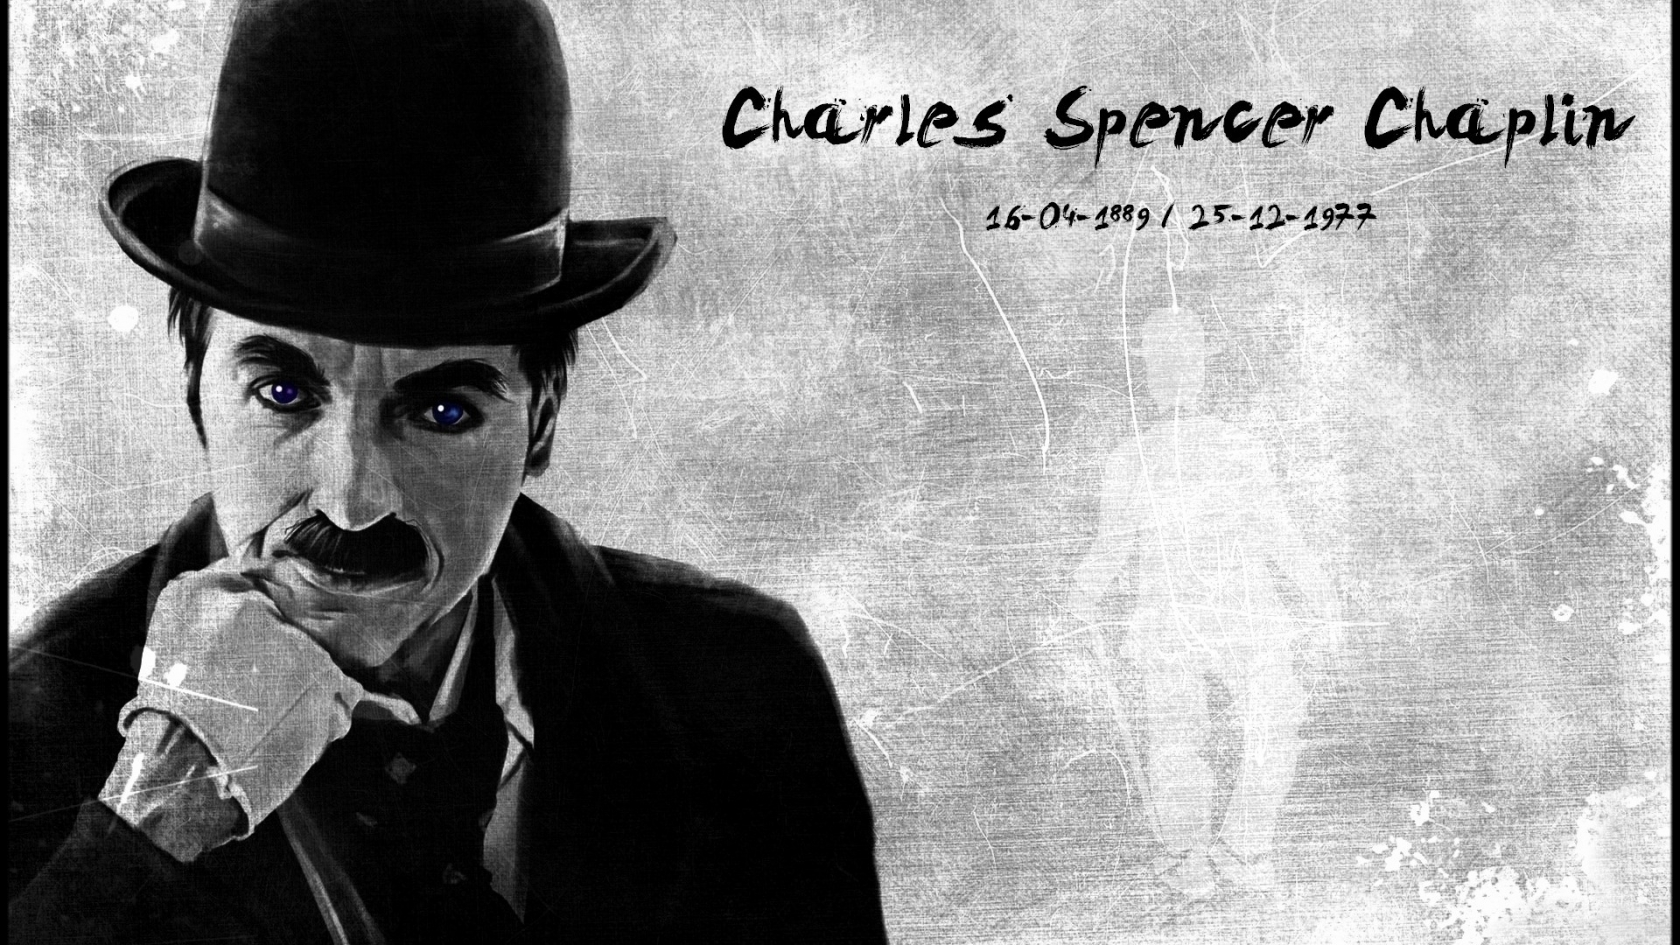 Charles Chaplin for 1680 x 945 HDTV resolution